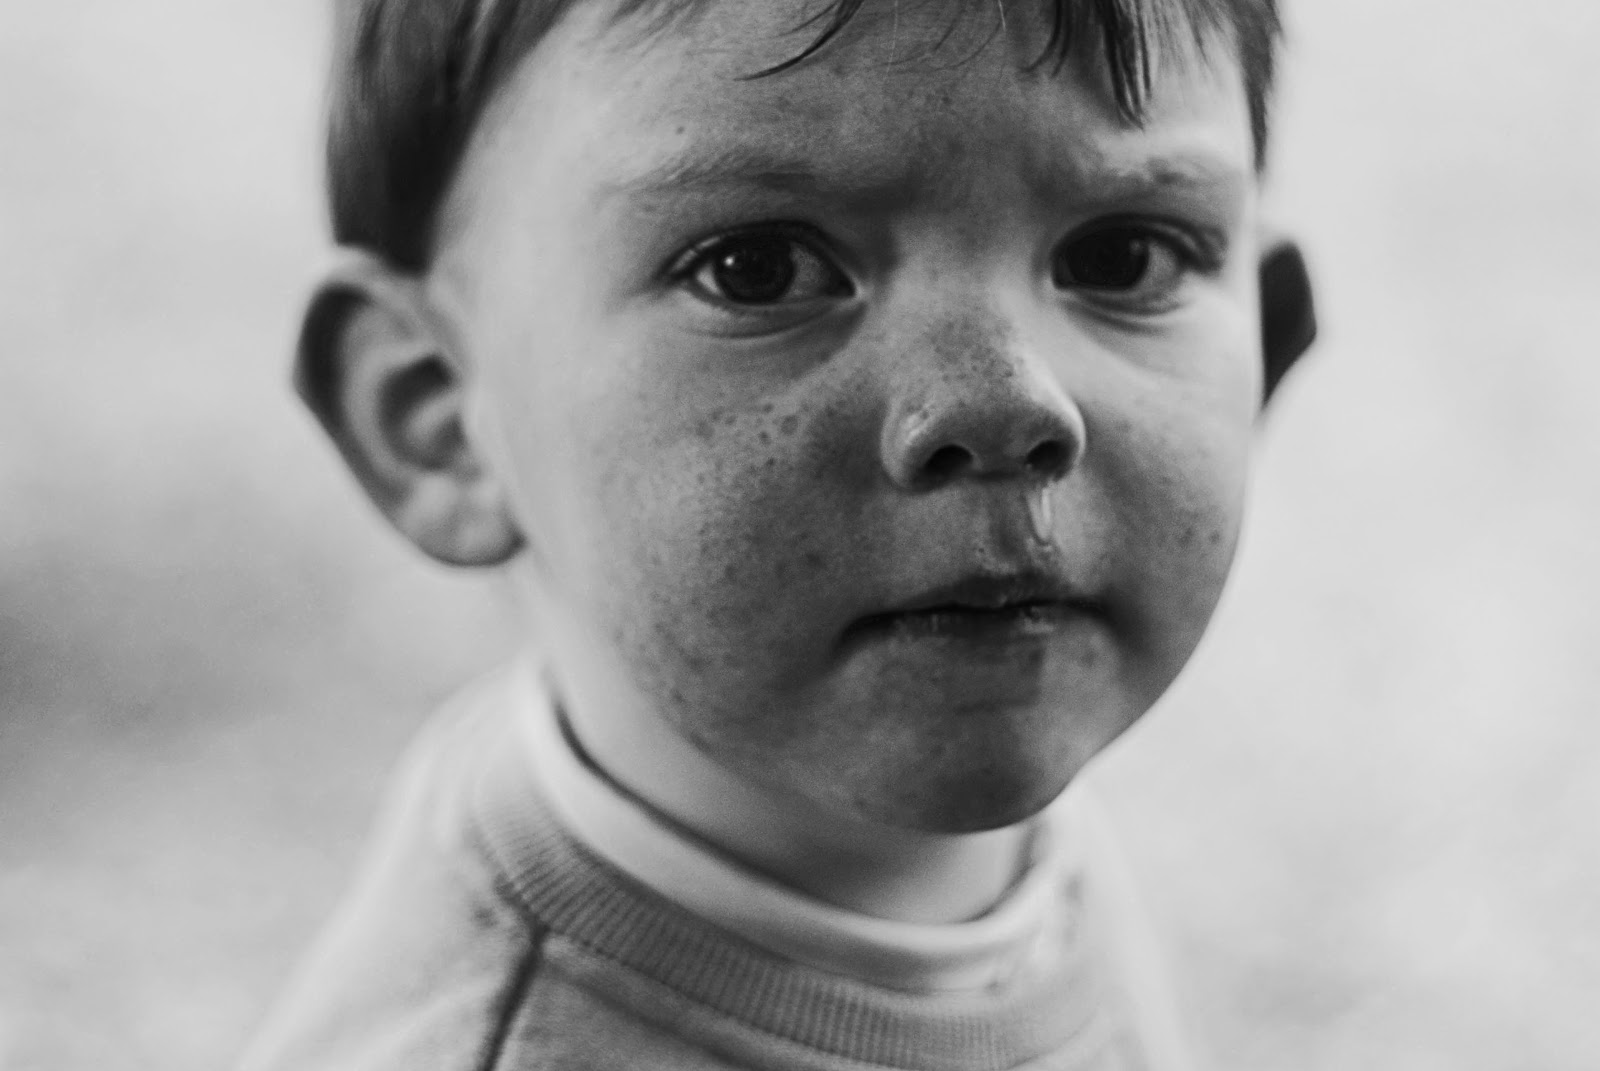 (because I have to have at least one photo for each post - and I can't show you my new work yet - here's an old photograph I took of a friend's child some time ago at a park)